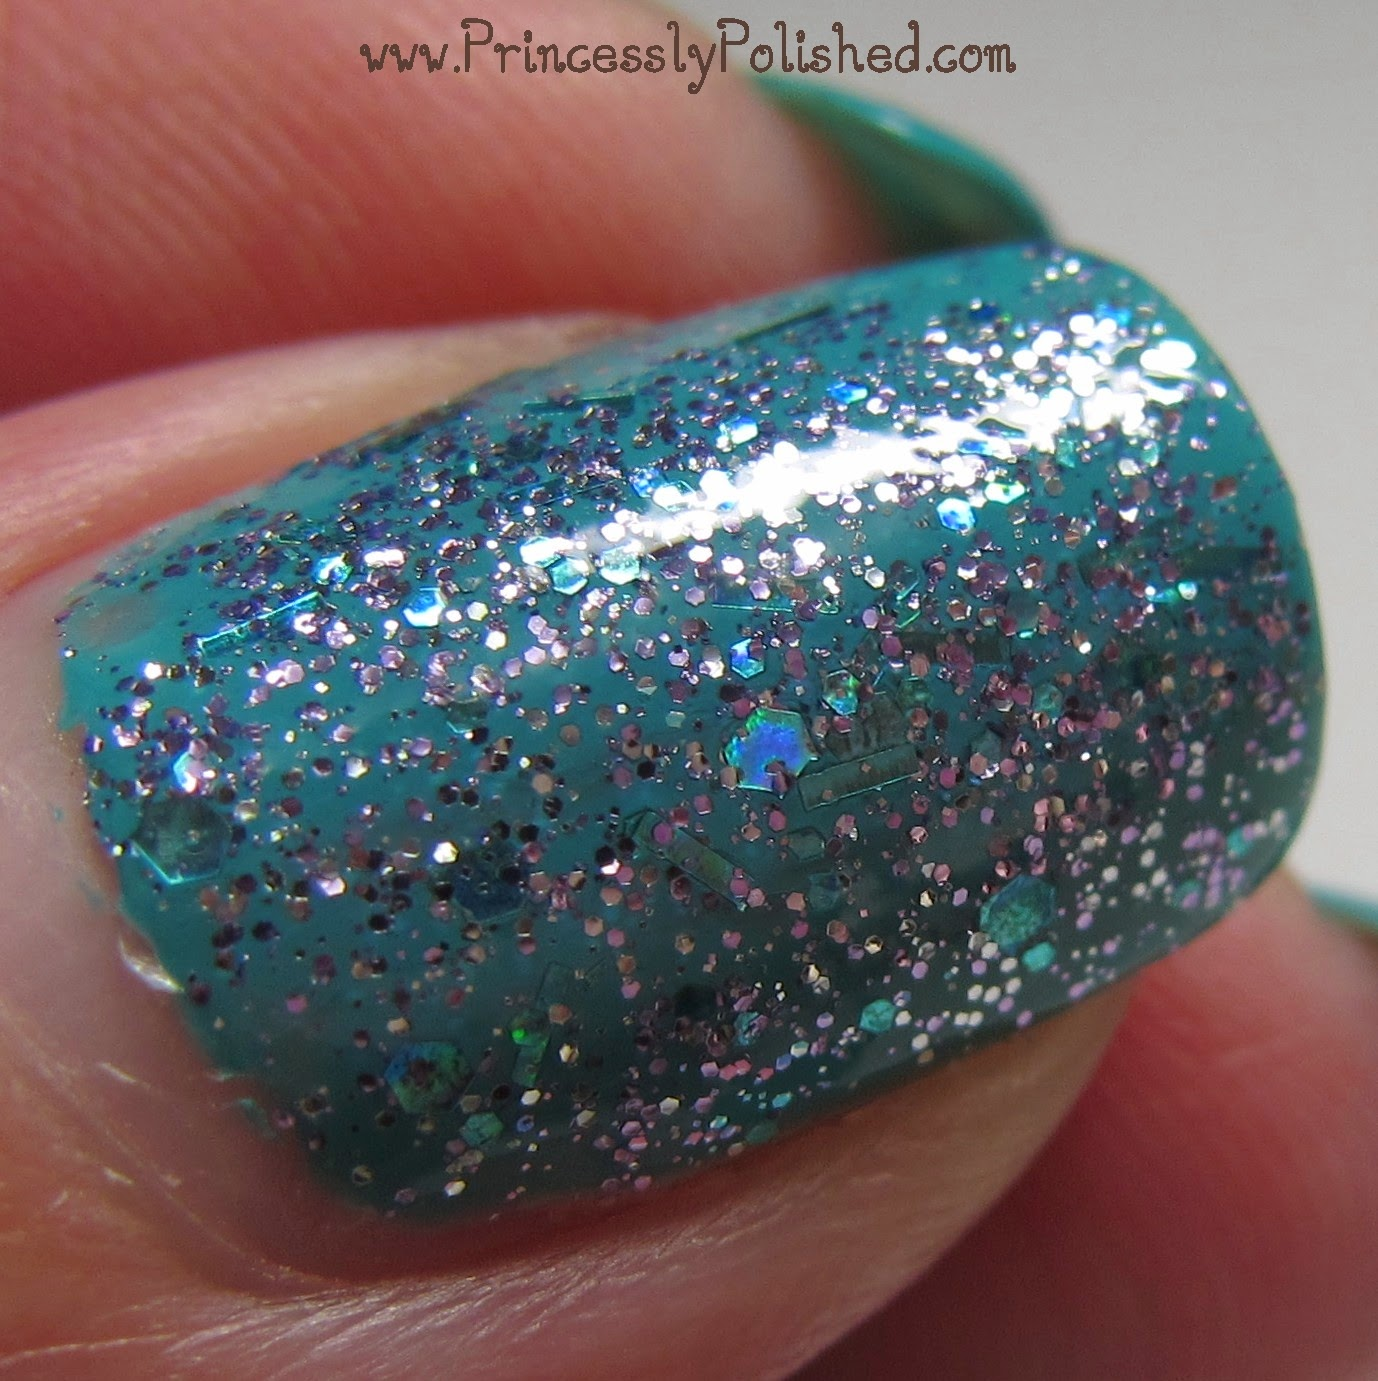 Princessly Polished: Pure Ice: Over You and Scream